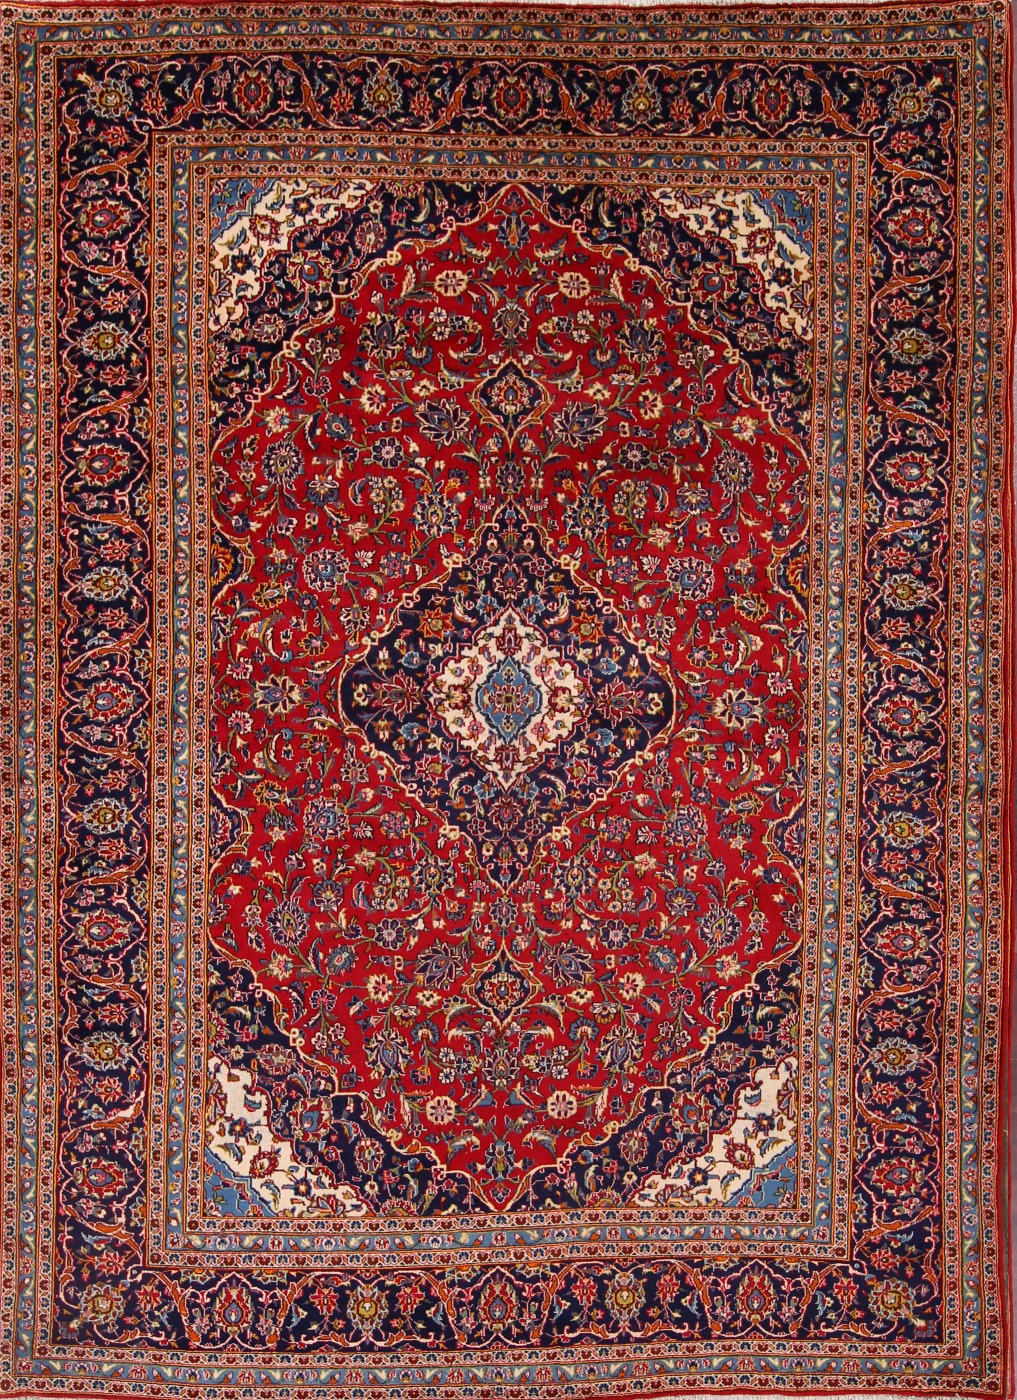 8'3 x 11'5 Hand-knotted RedNavy Persian Kashan Oriental Area Rug 12980461 (2)